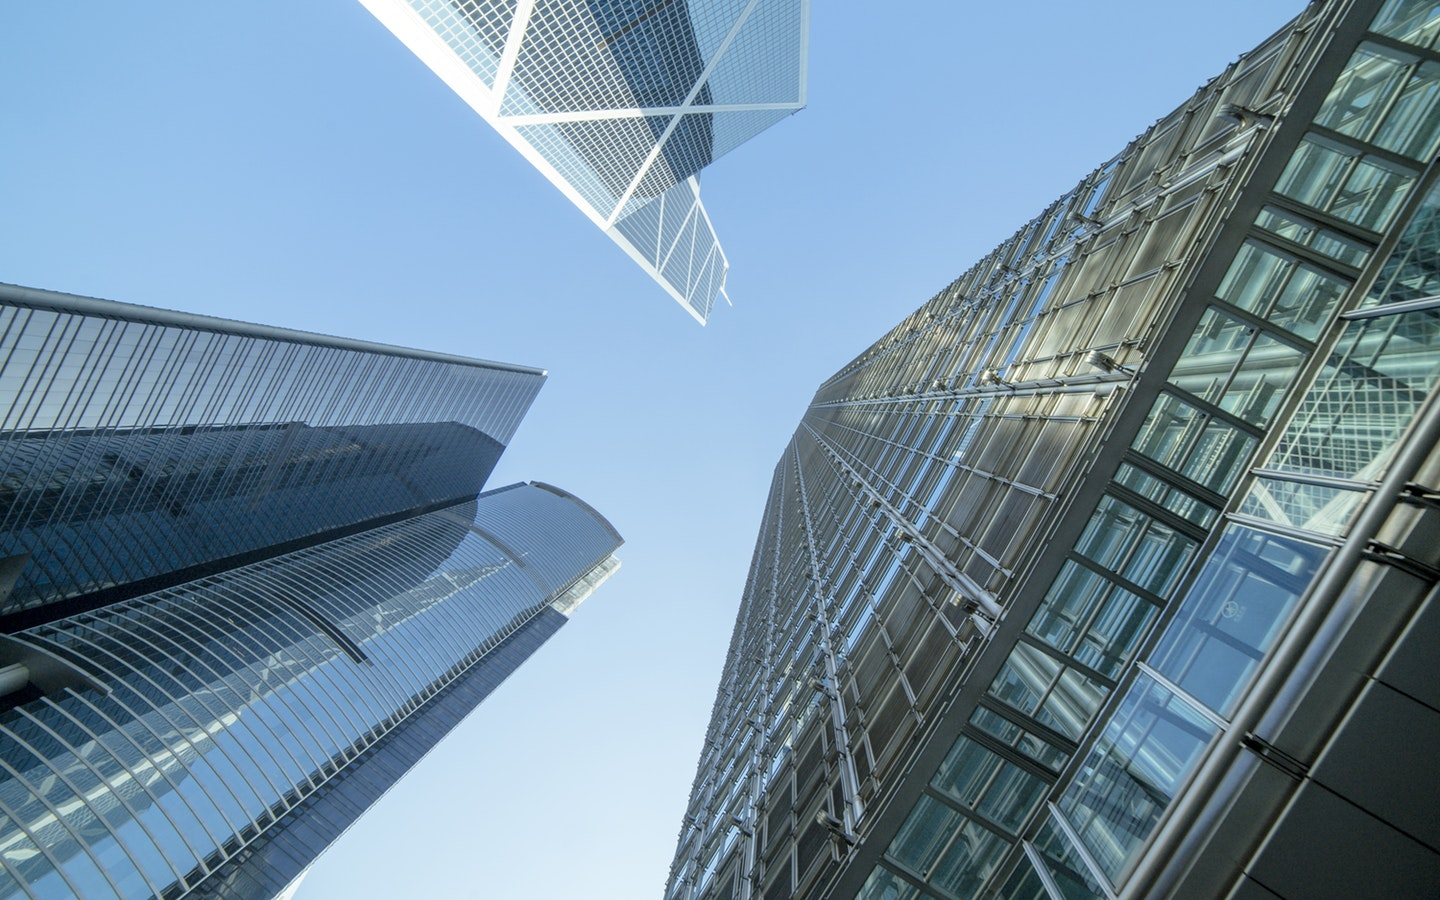 Stock market in Bangladesh is yet to see more real estate companies operating in the market